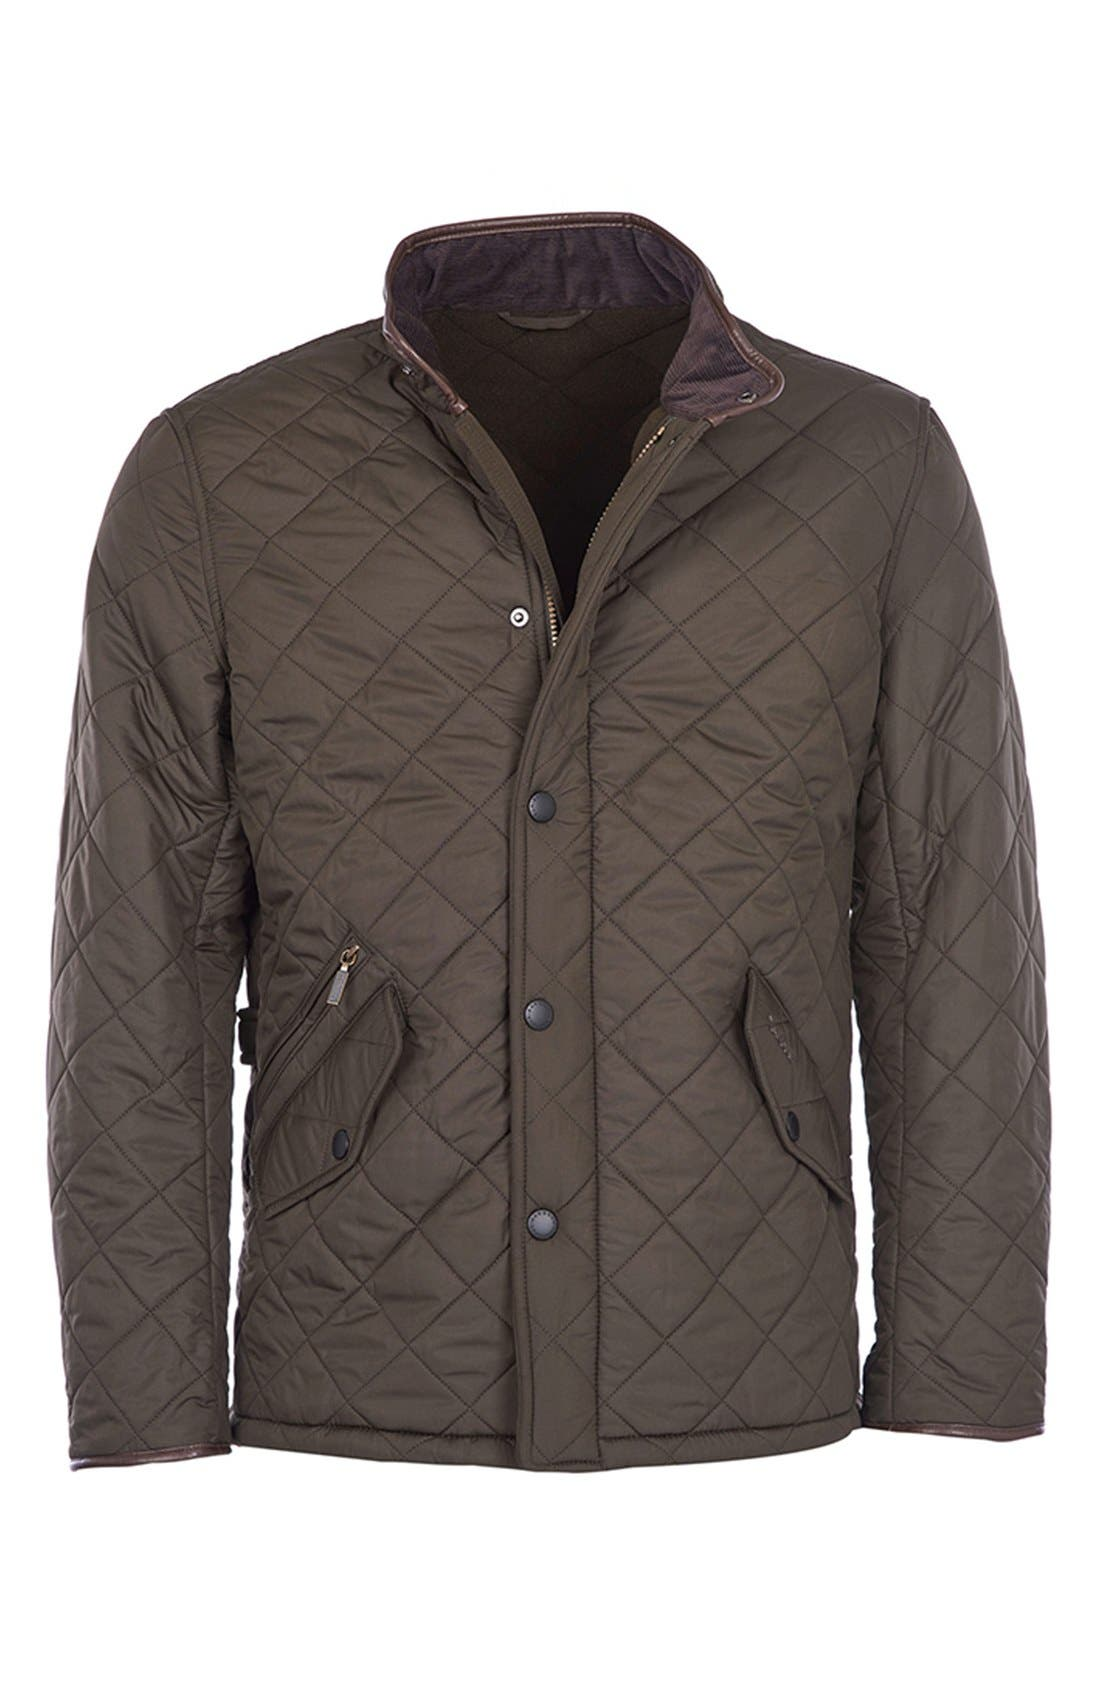 'Powell' Regular Fit Quilted Jacket,                             Alternate thumbnail 5, color,                             Olive